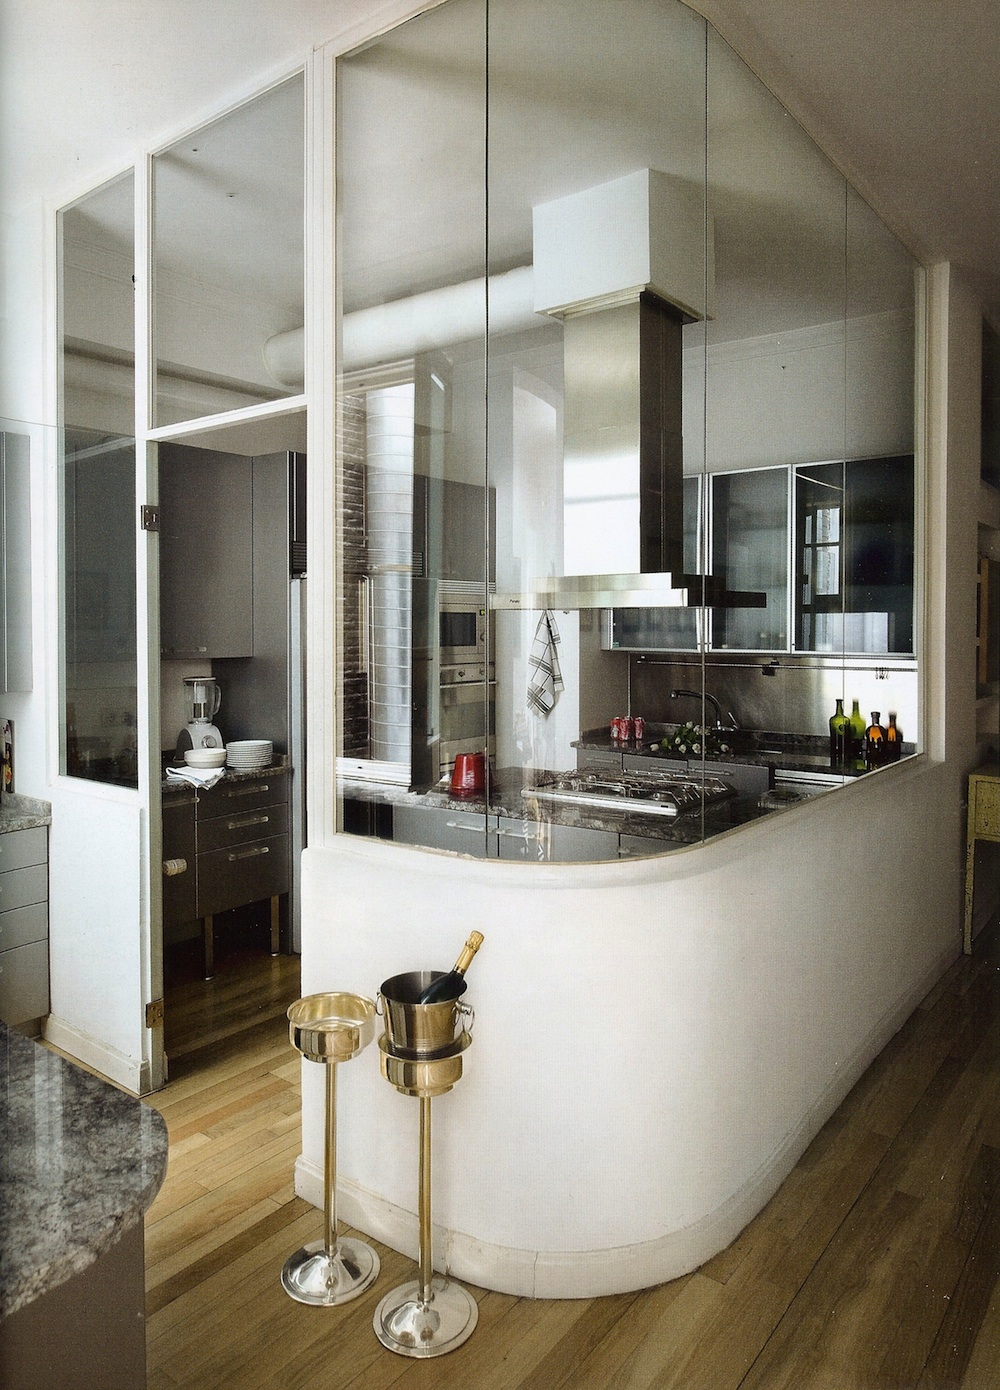 Inspirational Interiors Madrid Apartment Jason Mowen